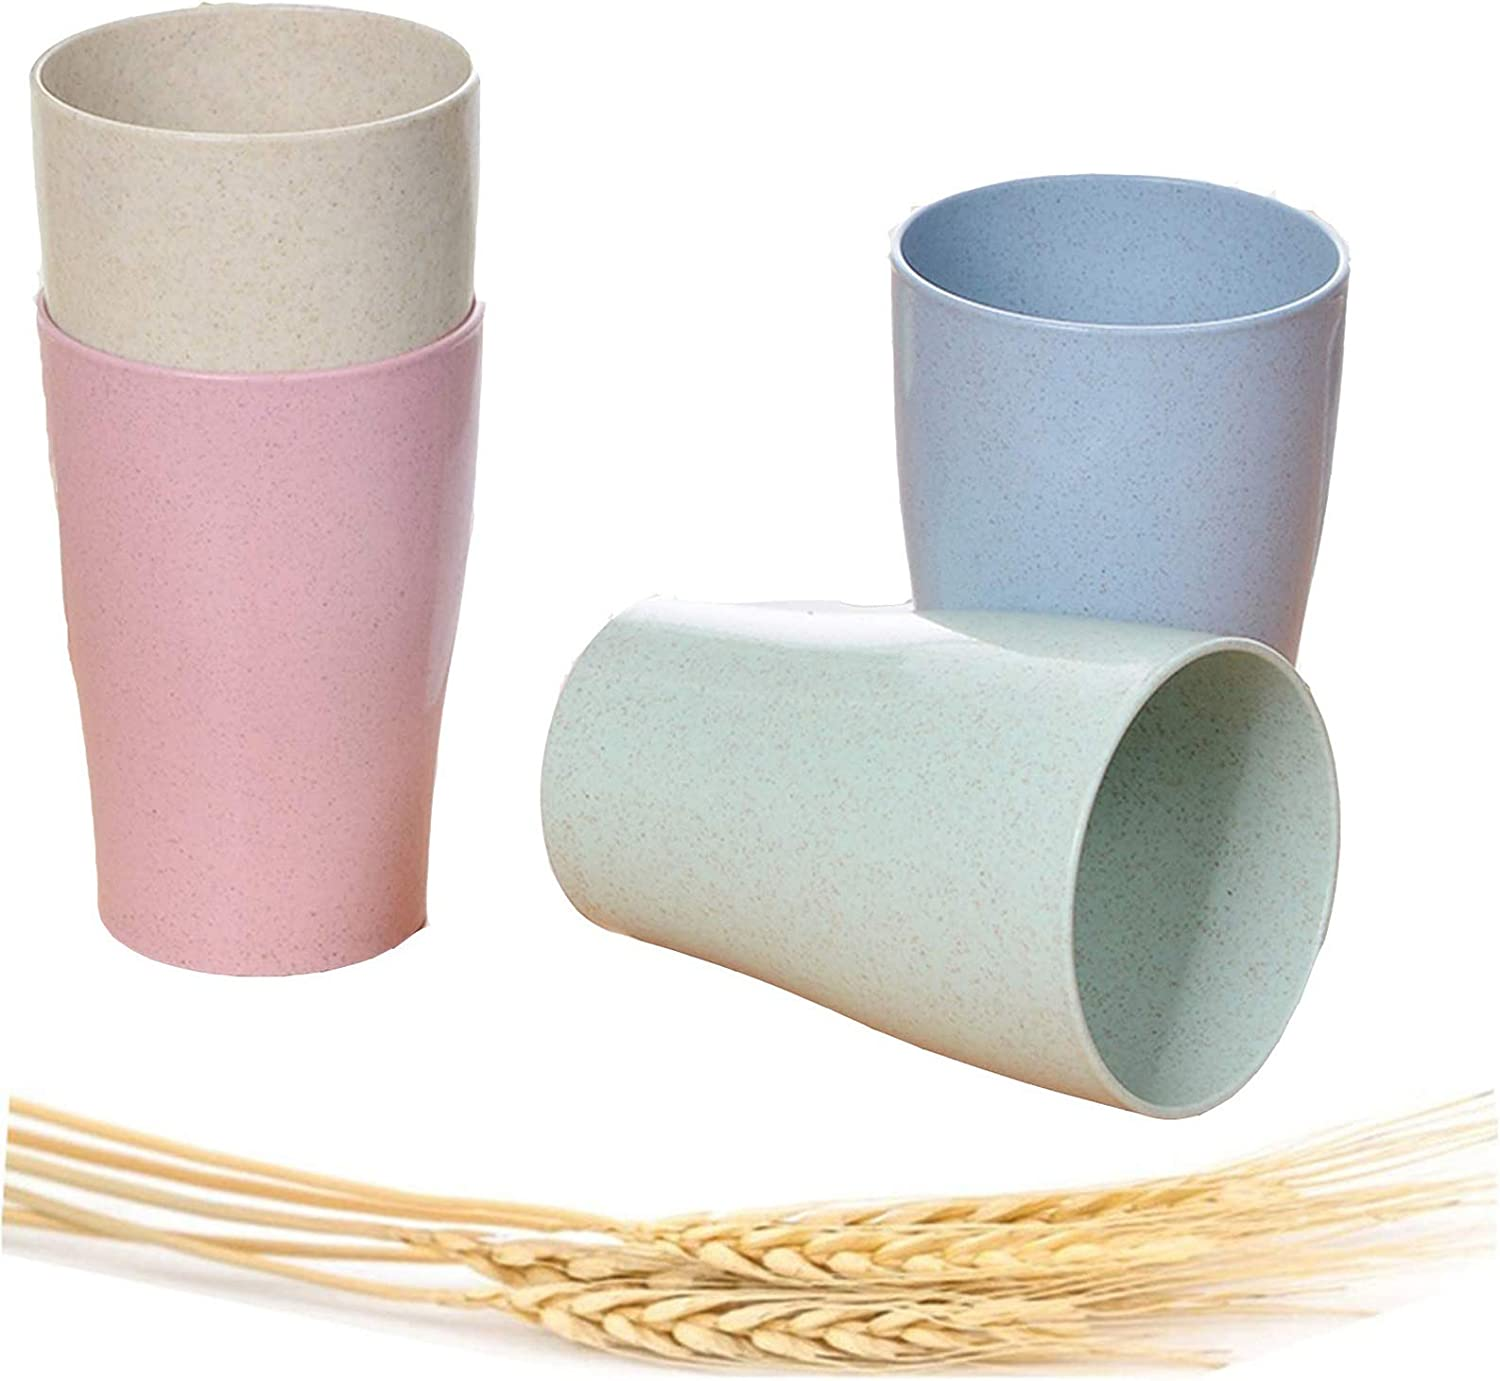 Eco-friendly Unbreakable Reusable Drinking Cup for Adult, Wheat Straw Biodegradable Healthy Tumbler Set 5-Multicolor, Dishwasher Safe